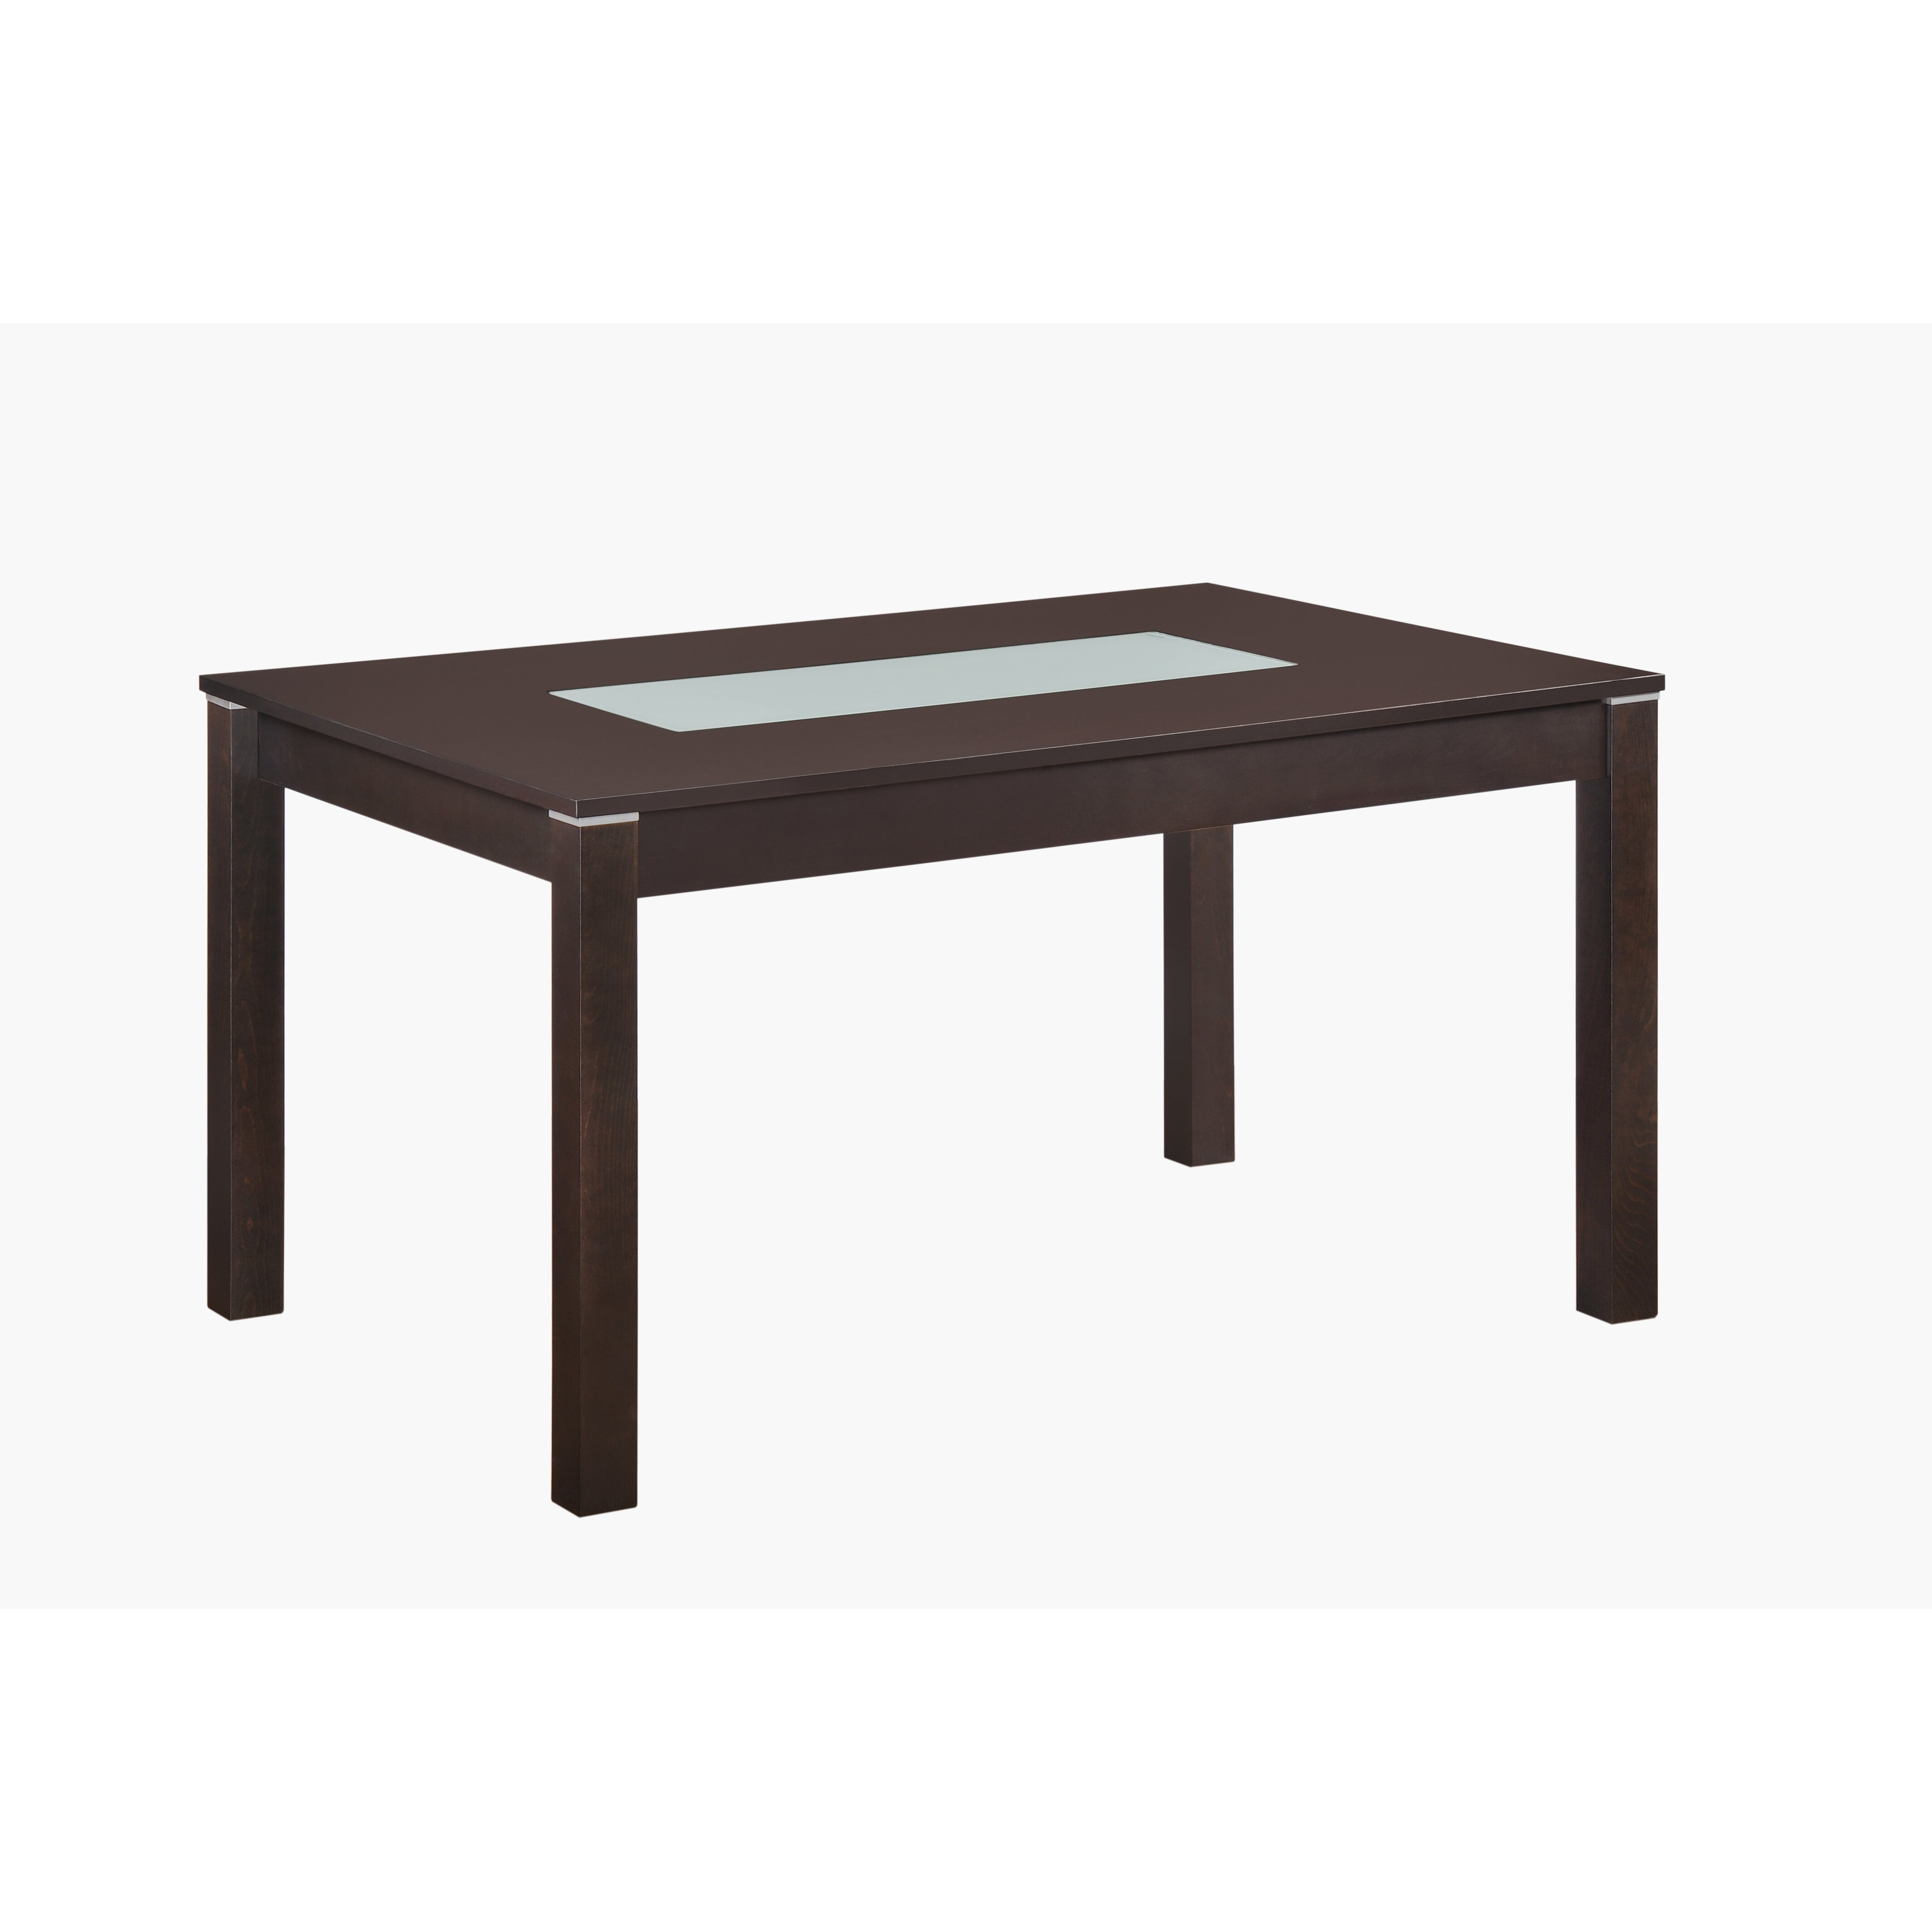 Global Furniture USA Extendable Dining Table amp Reviews  : Global Furniture USA Extendable Dining Table from www.wayfair.com size 4256 x 4256 jpeg 471kB